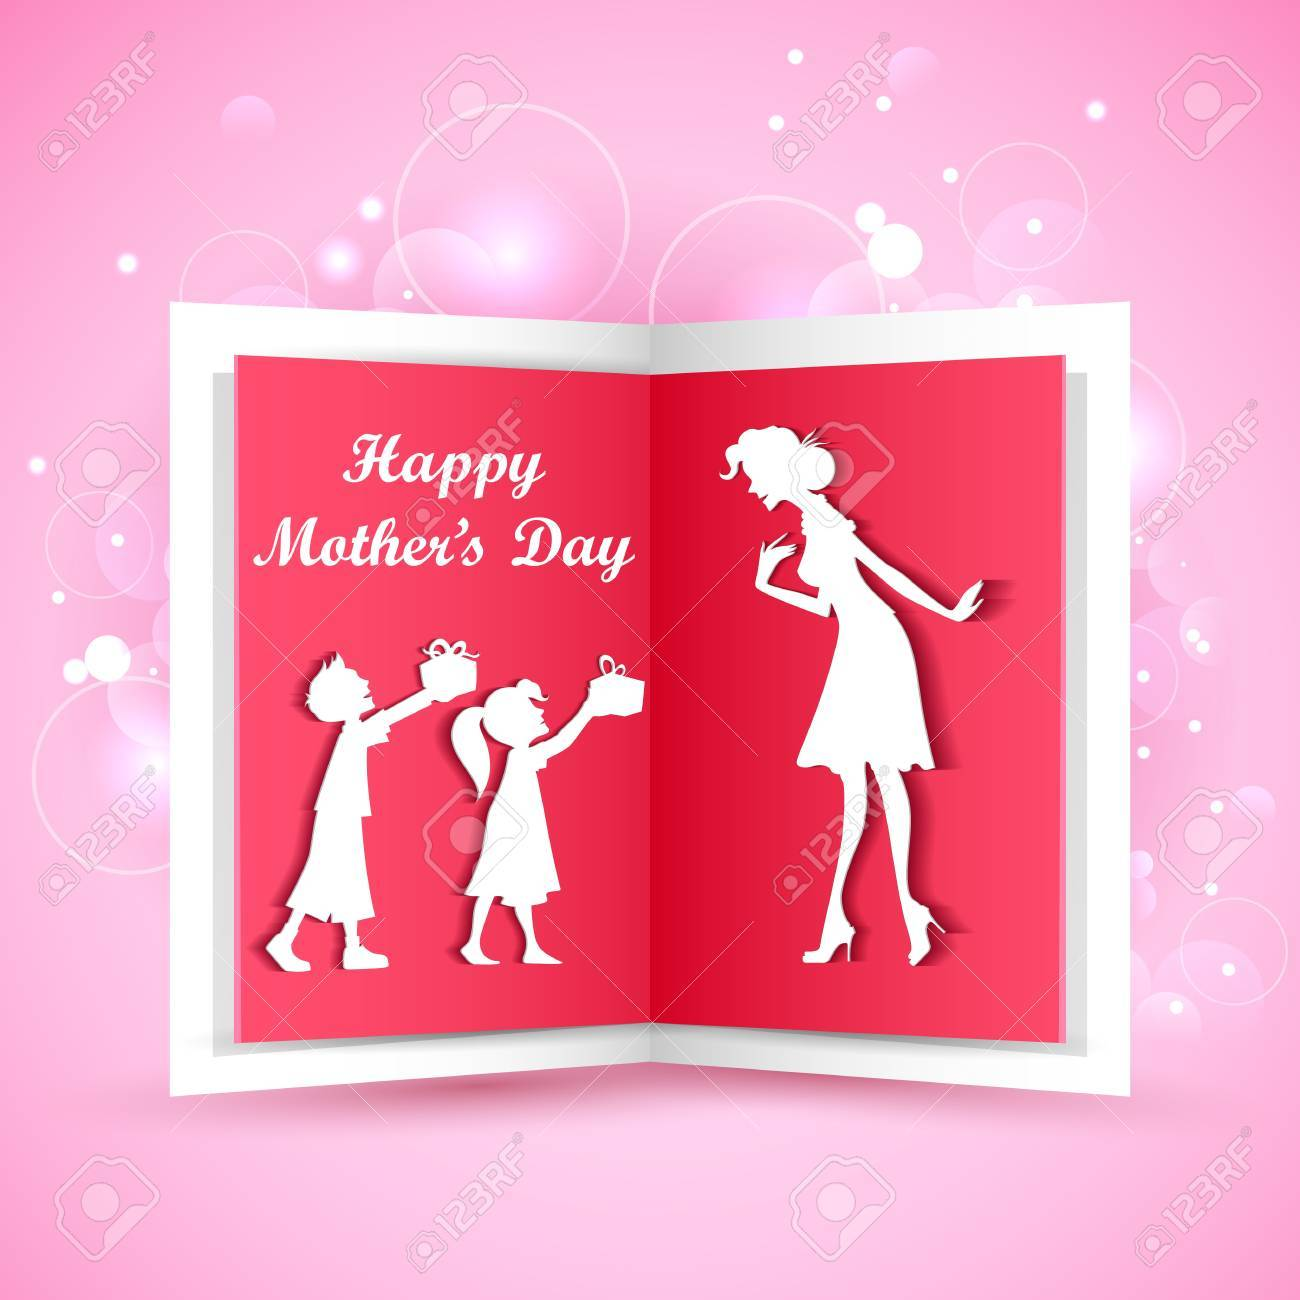 illustration of kids giving gift to mother on Mother s Day Stock Vector - 18960243